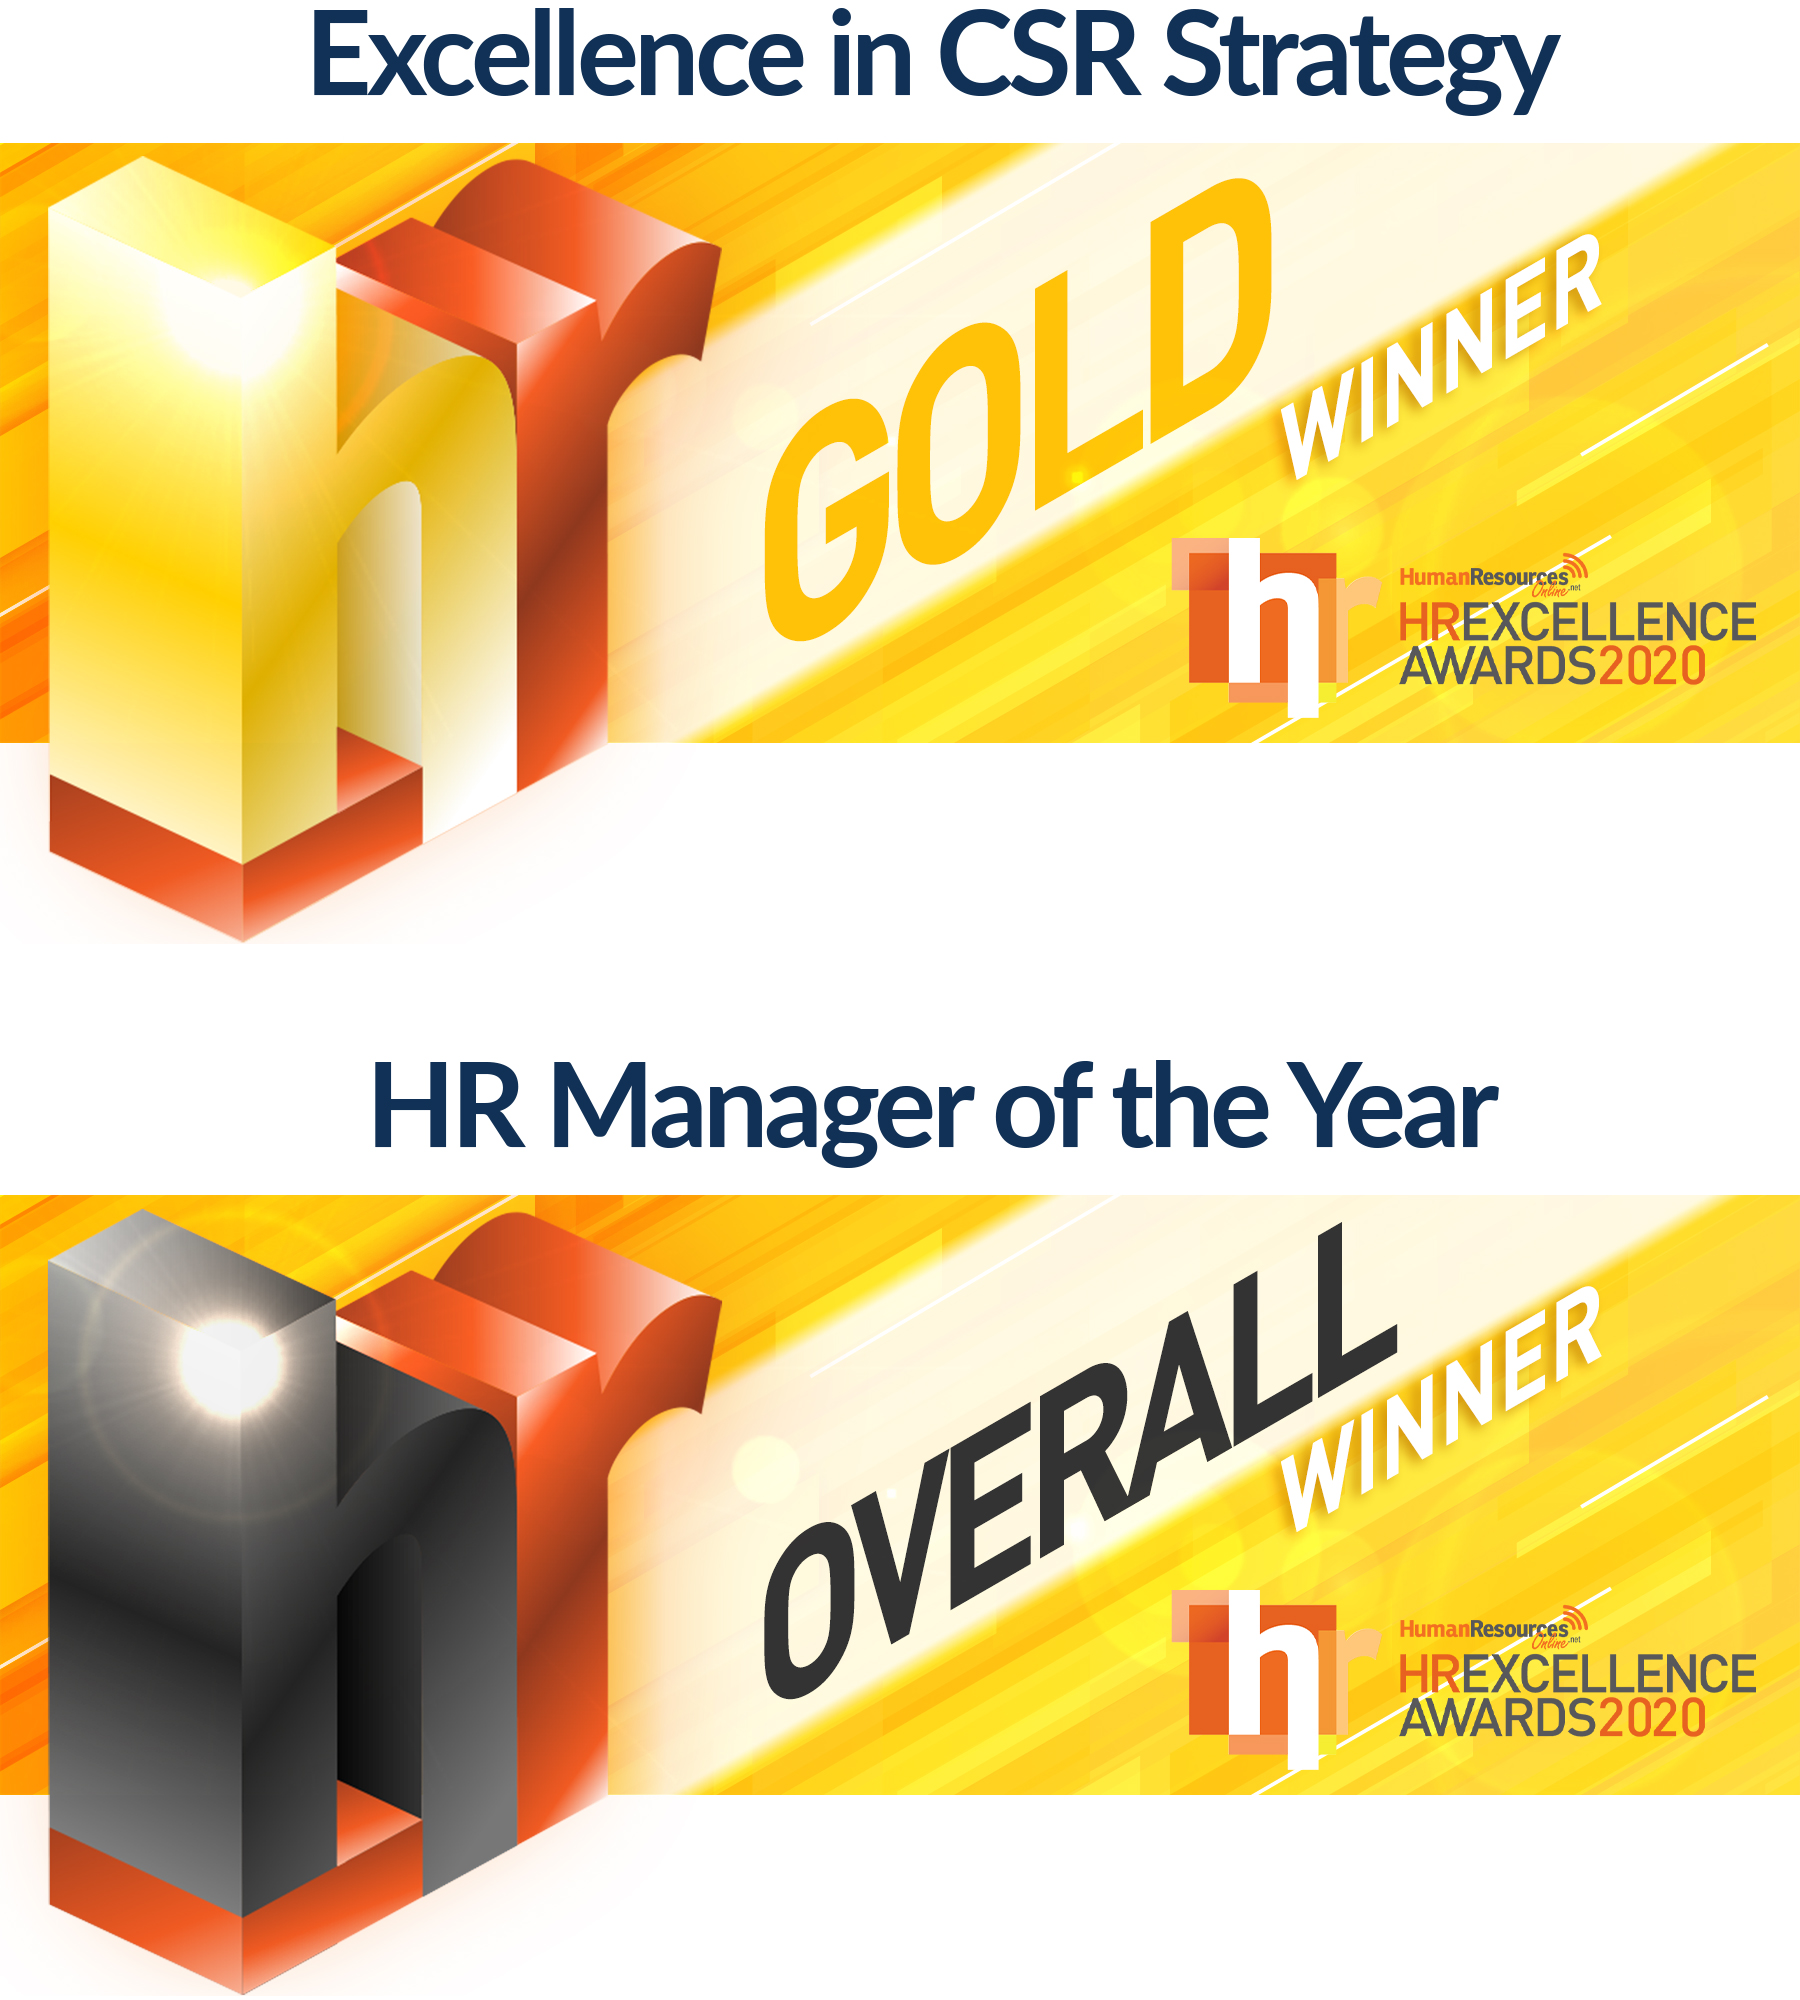 HR Excellence Awards - Excellence in CSR Strategy & HR Manager of the Year